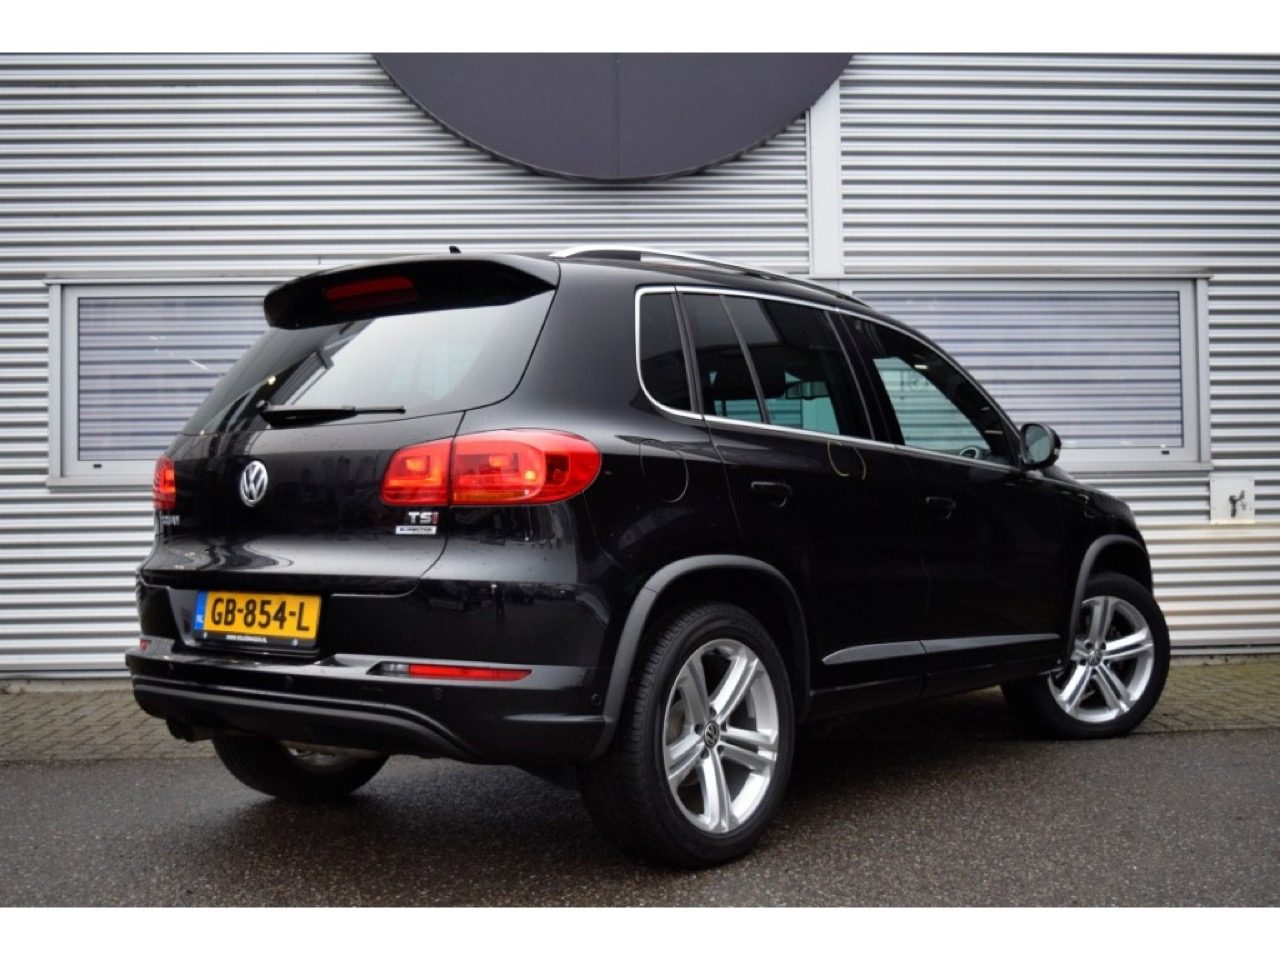 koop de volkswagen tiguan van vlogger enzo knol. Black Bedroom Furniture Sets. Home Design Ideas